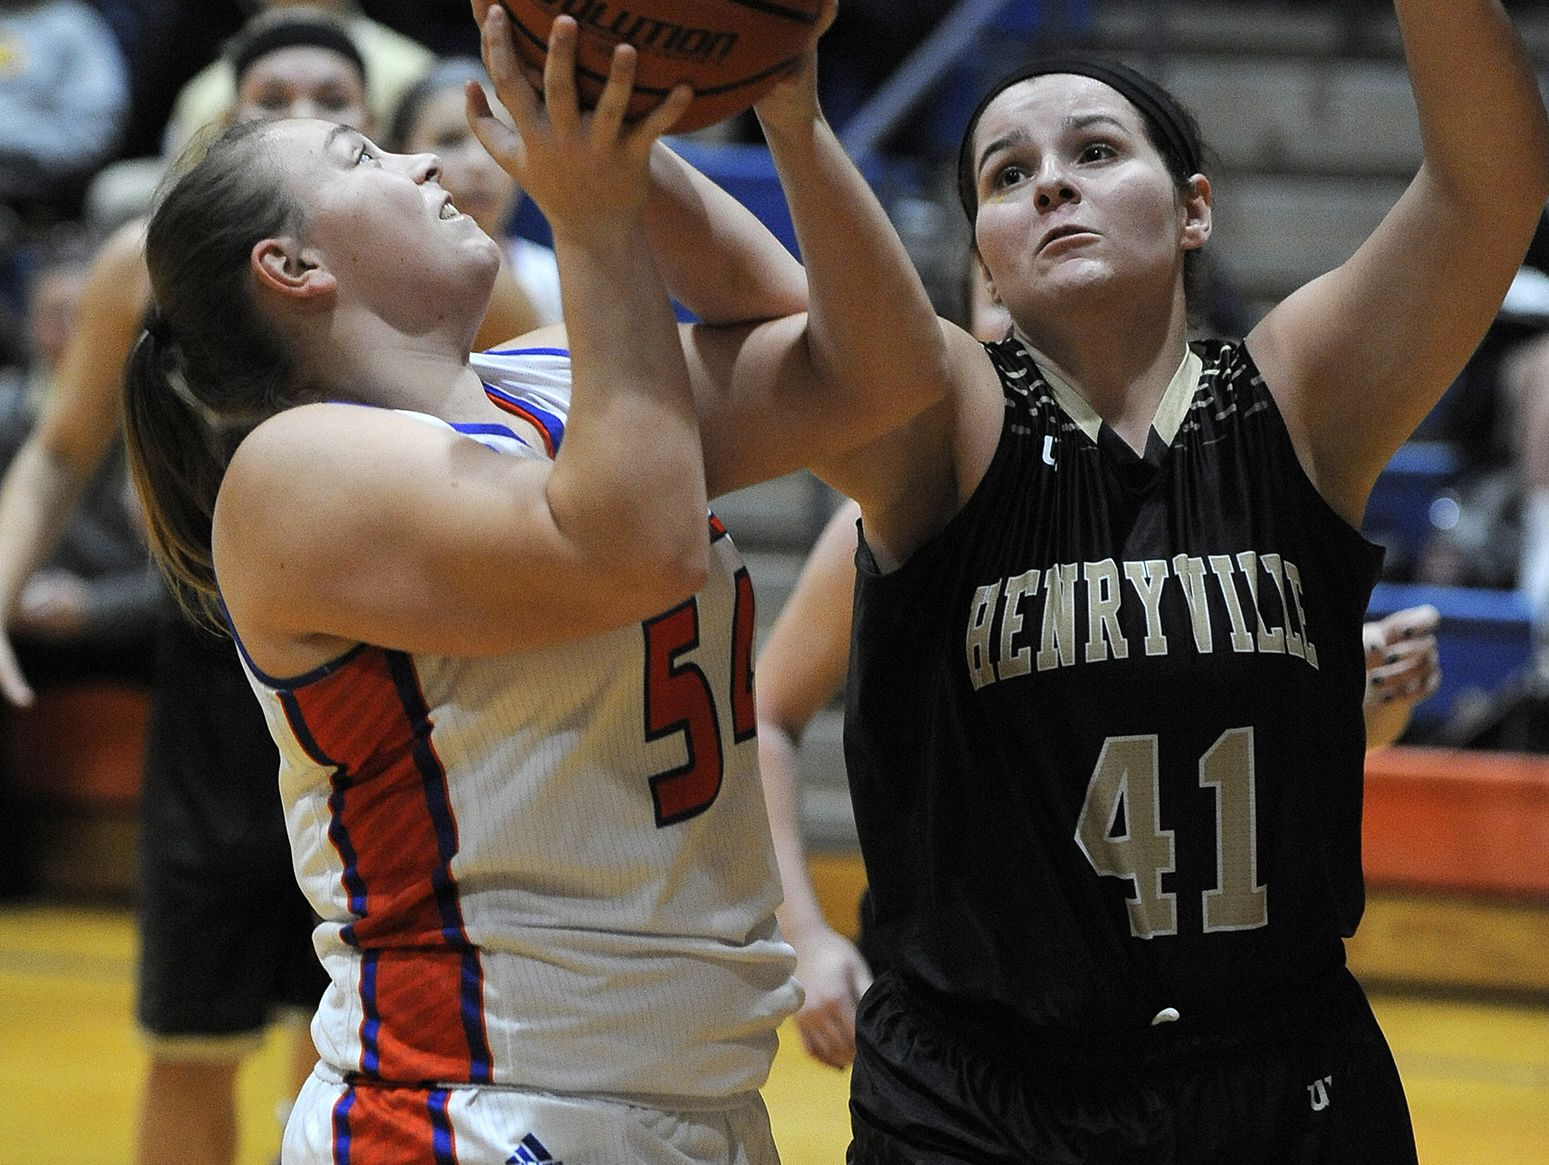 Silver Creek's Savannah O'Neil (left) shoots against Henryville's Kennedy Easton (41) on Tuesday at Silver Creek High School. (Photo by David Lee Hartlage, Special to The Courier-Journal) Dec. 13, 2016